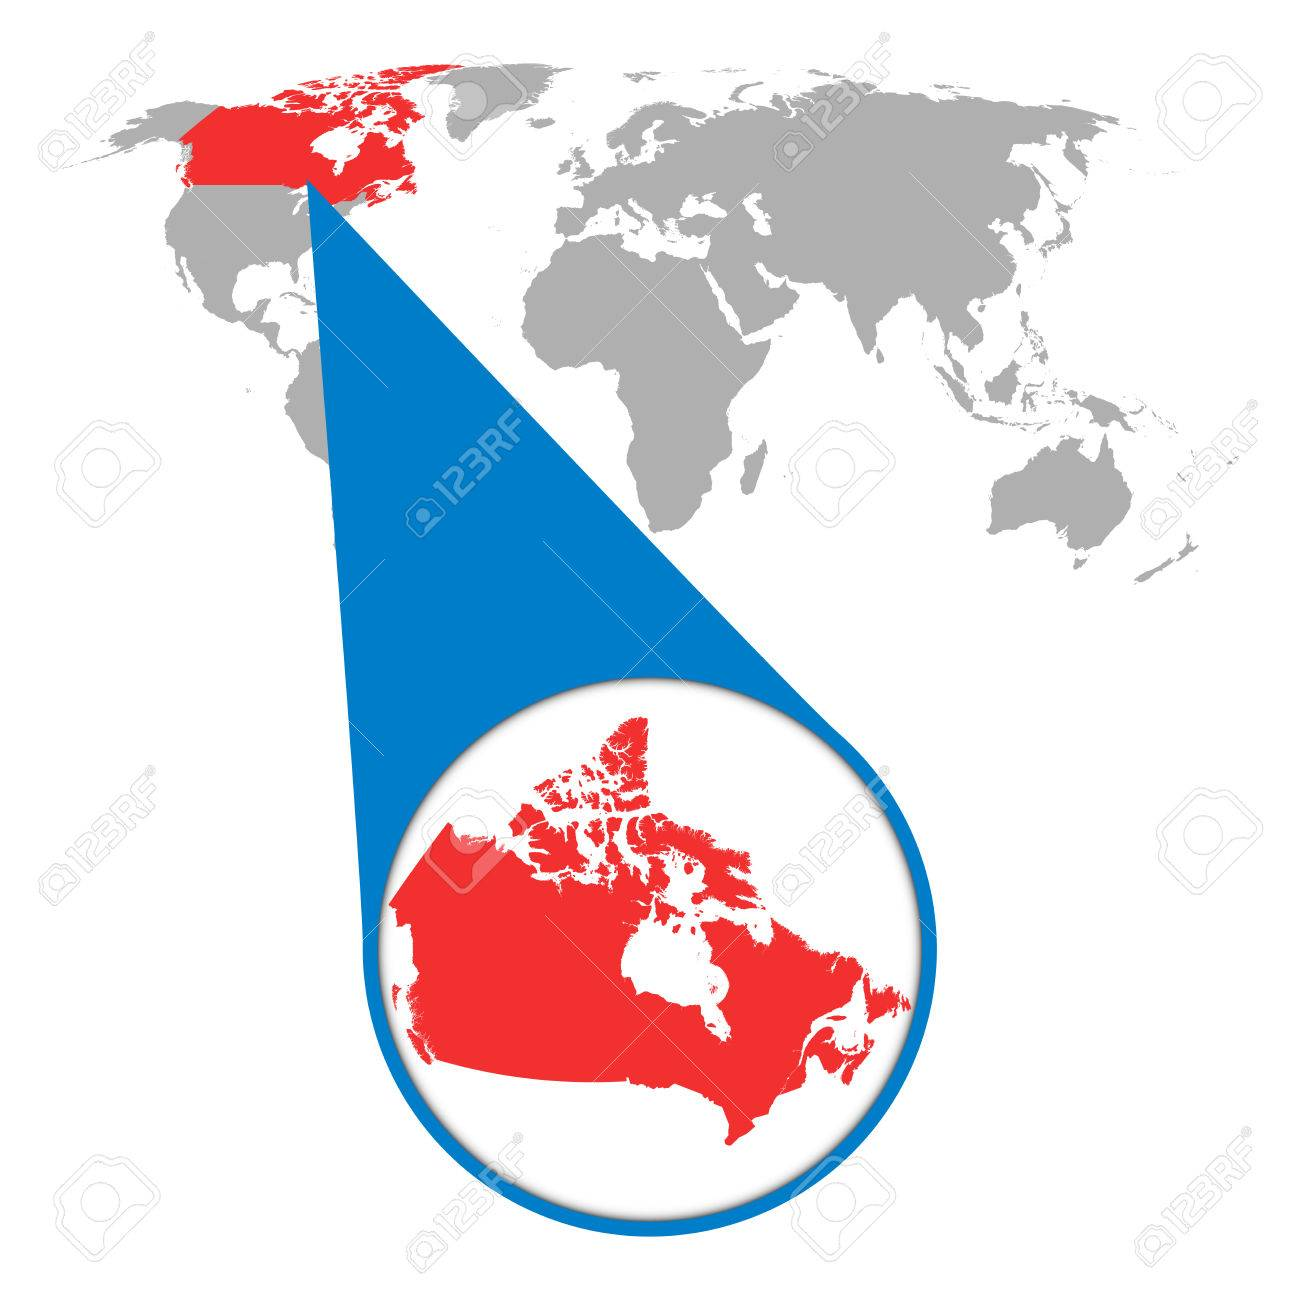 Canada Map Of The World.World Map With Zoom On Canada Map In Loupe Vector Illustration